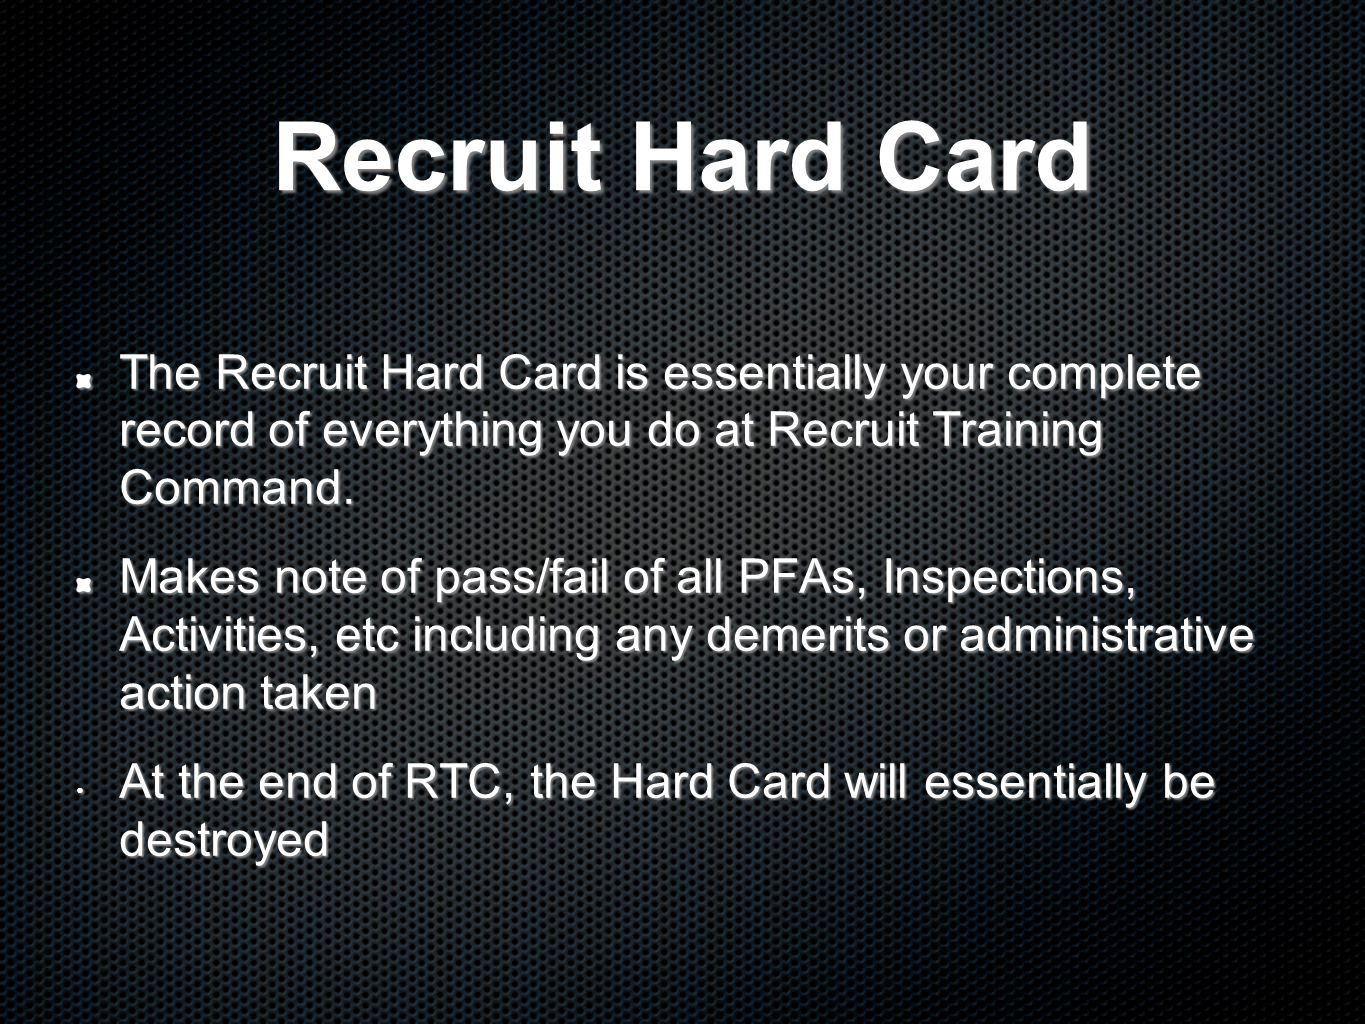 Recruit Hard Card The Recruit Hard Card is essentially your complete record of everything you do at Recruit Training Command.